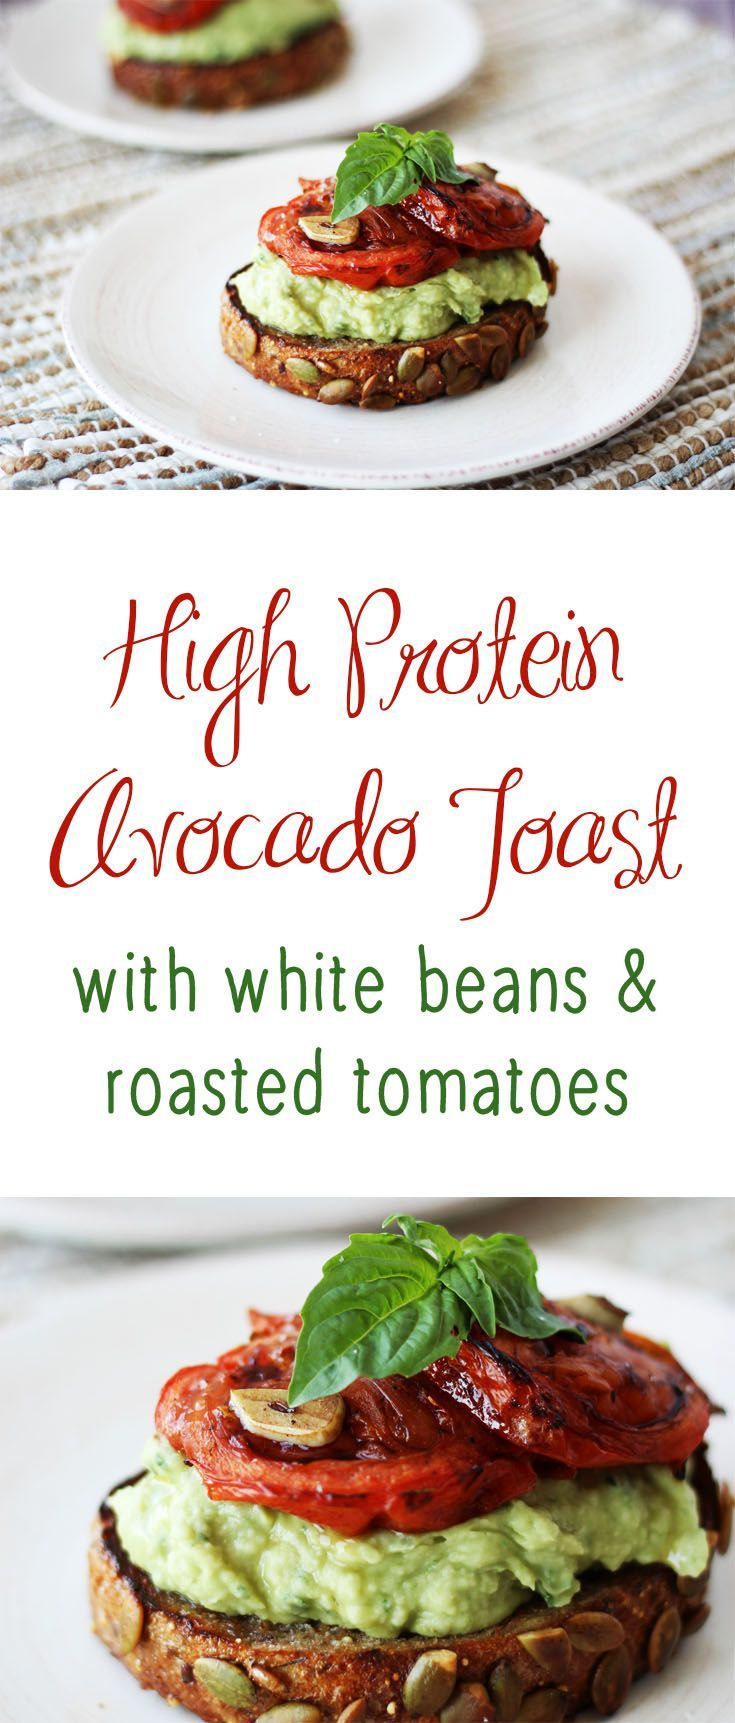 This amazing high protein avocado toast with white beans and roasted tomatoes is a delicious gluten free, vegan breakfast or snack for any time of day. | healthy recipe ideas @xhealthyrecipex |